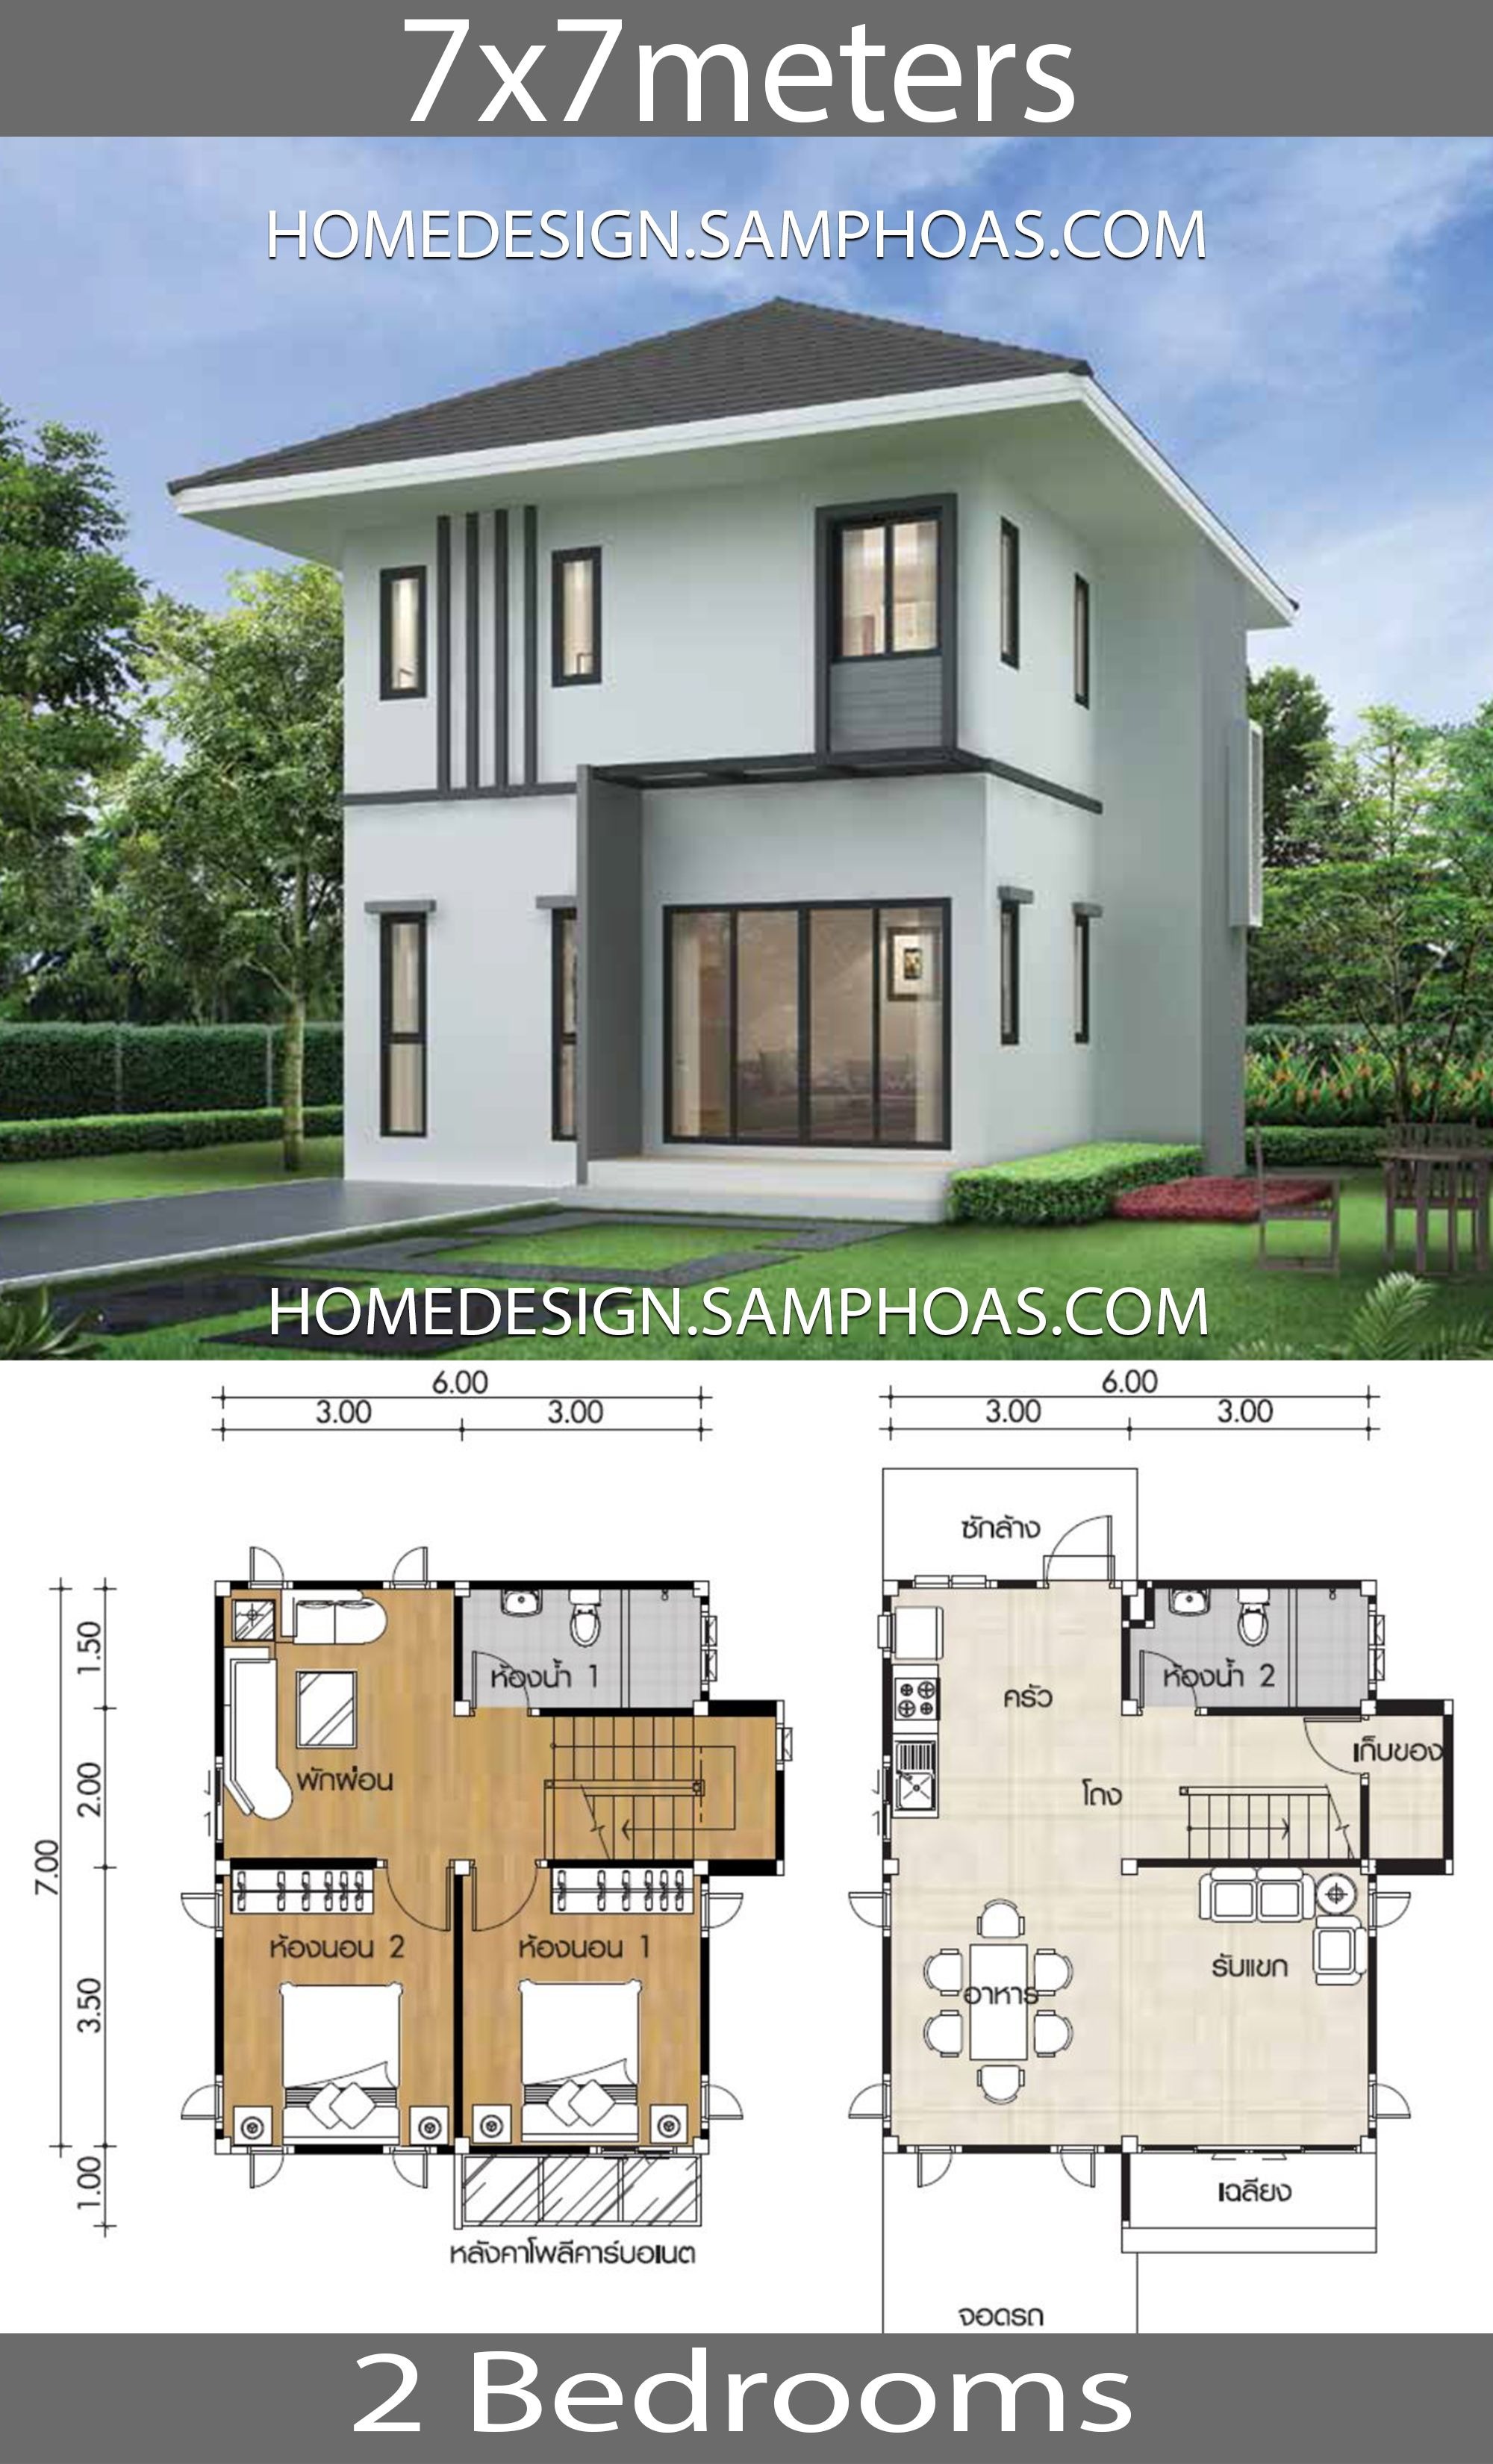 20 House Design With Layout Plans You Wish To See House Plans 3d Home Design Plans Small House Design Plans Small House Design